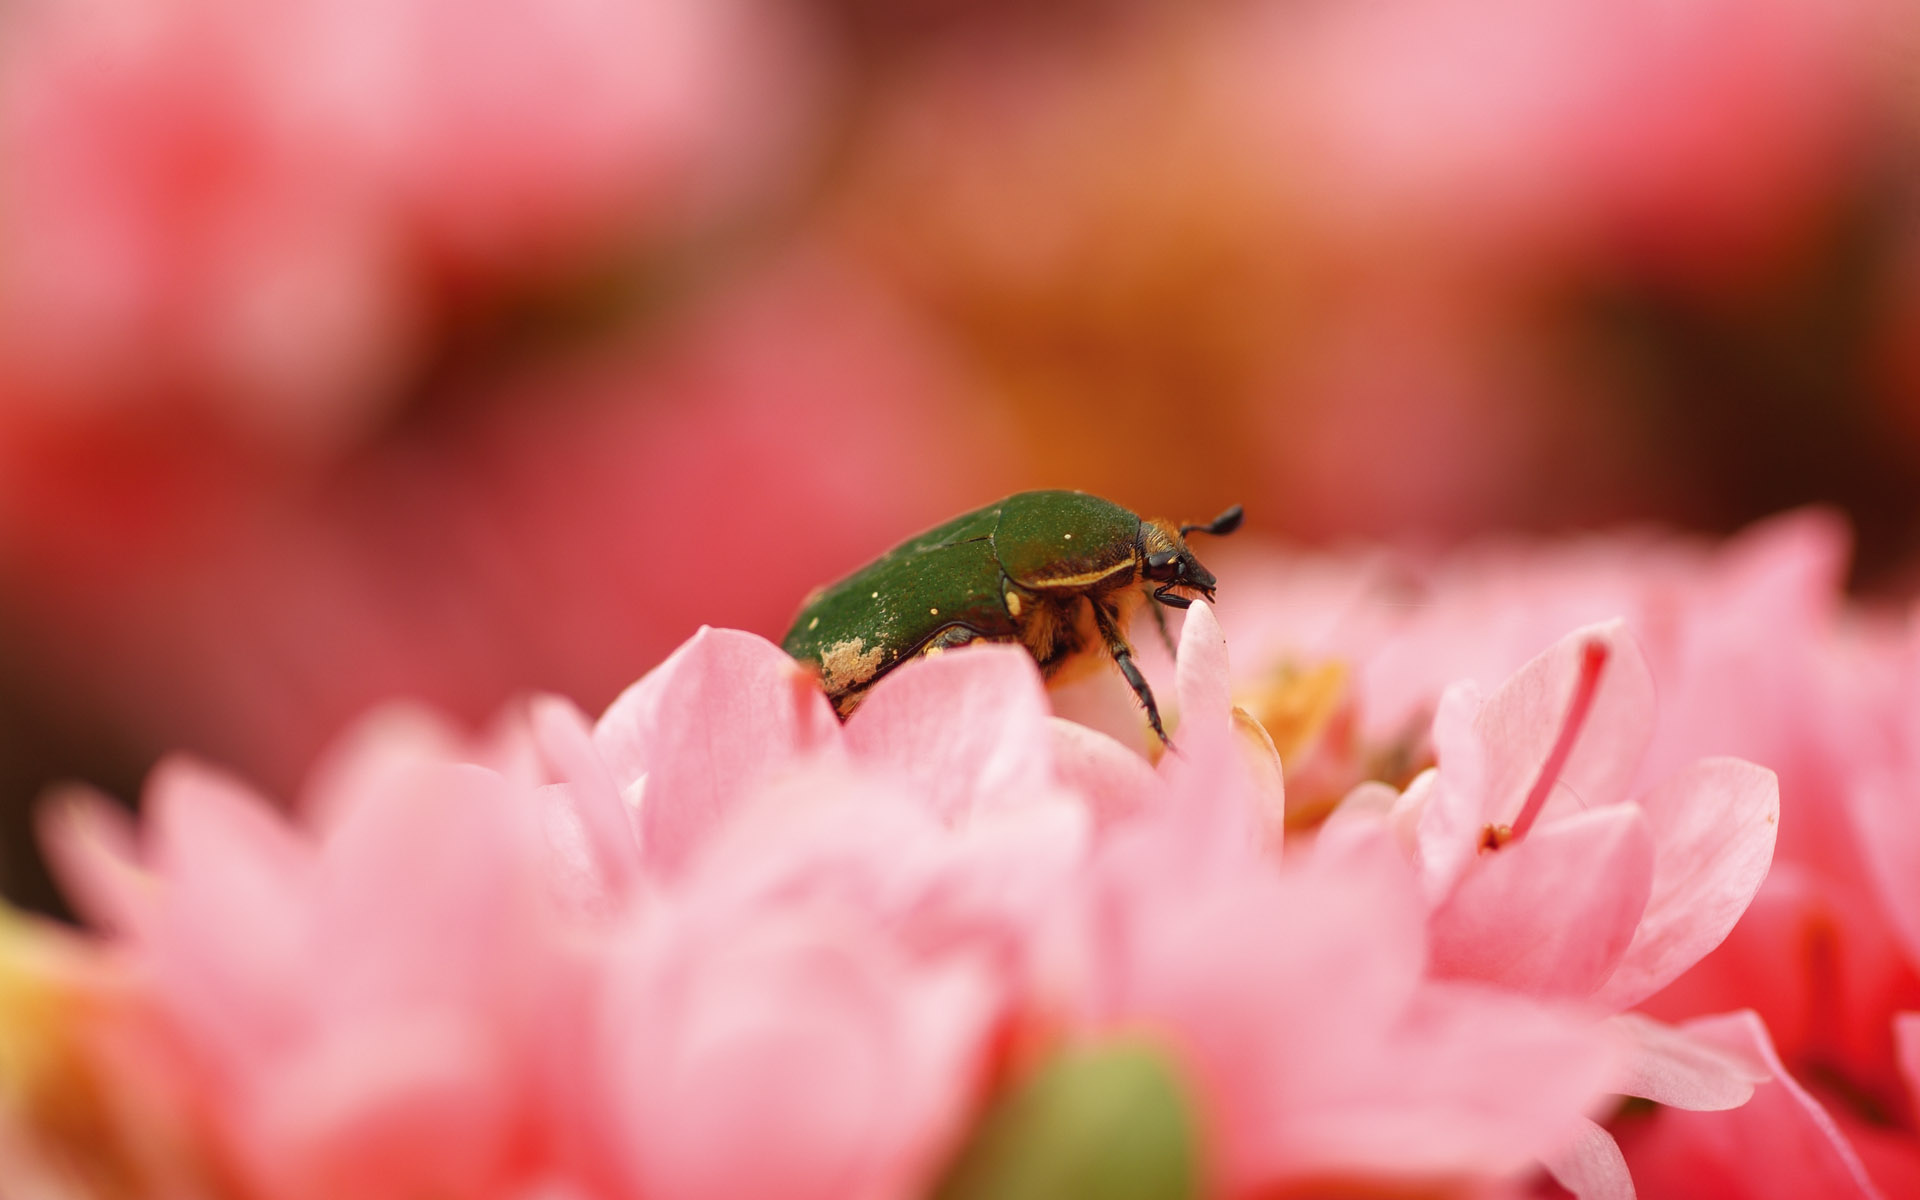 Widescreen insect photo material 1036